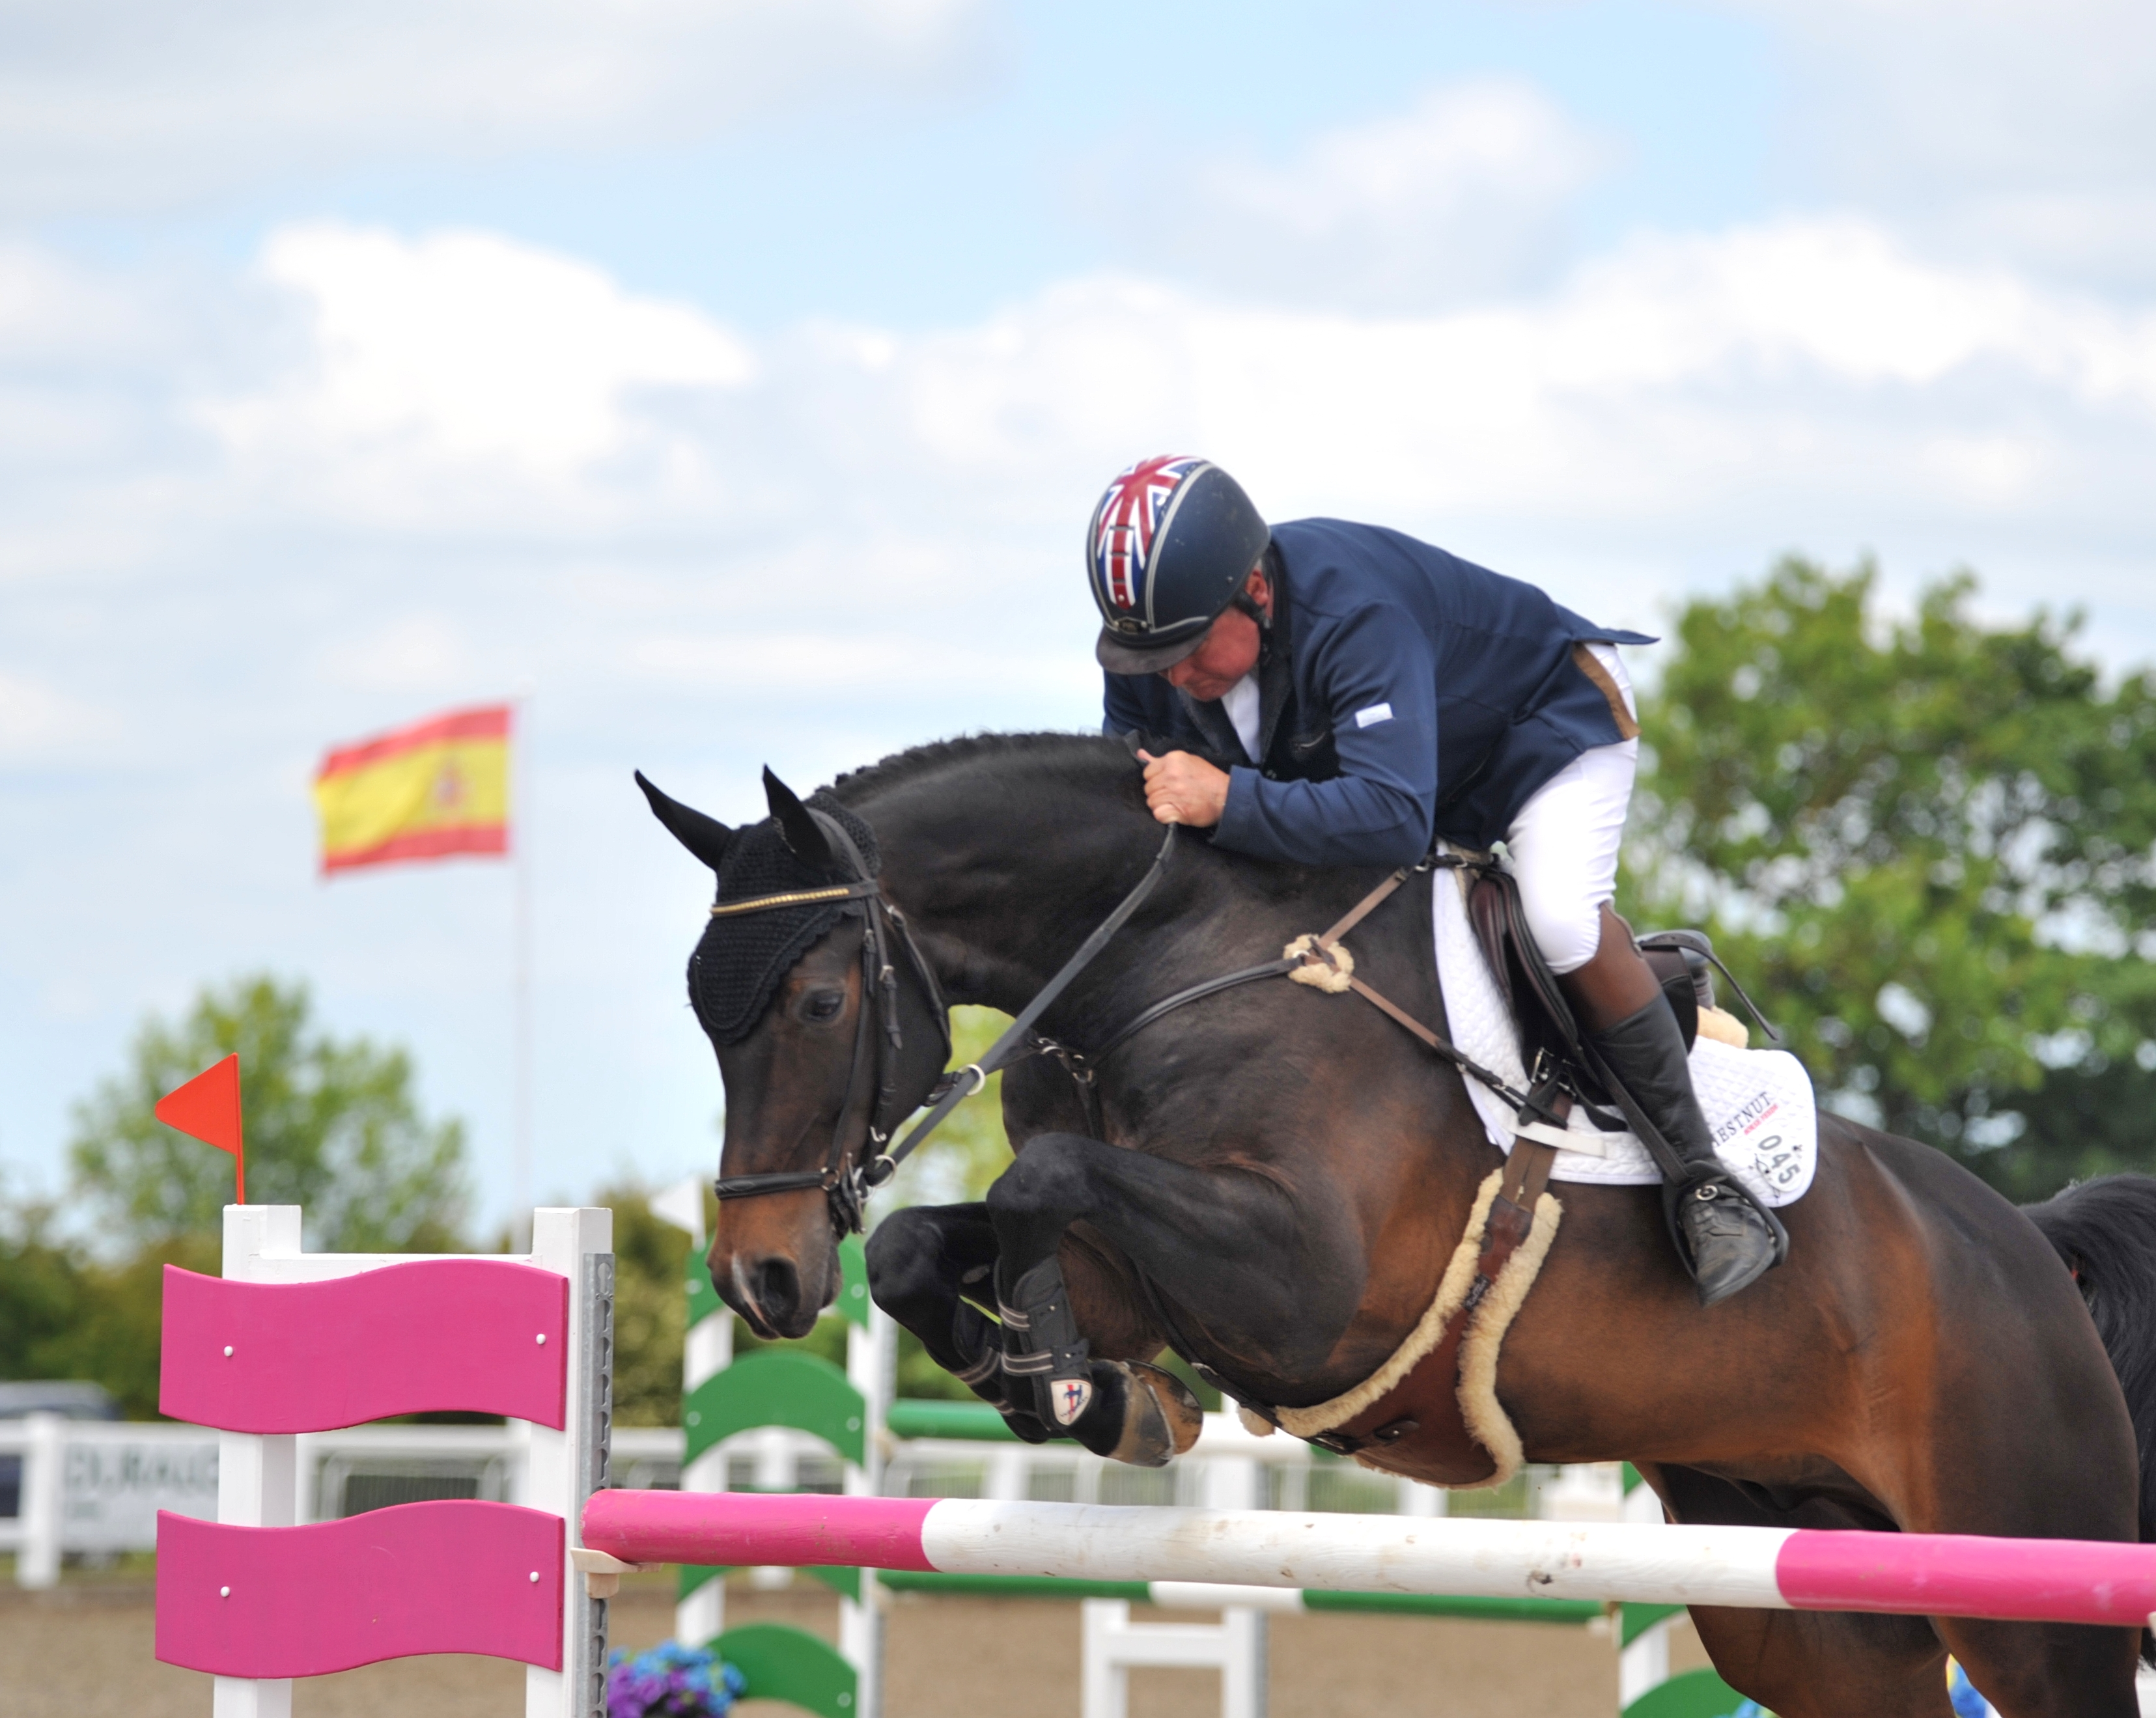 Geoff Billington Arena UK courtesy of Equipics